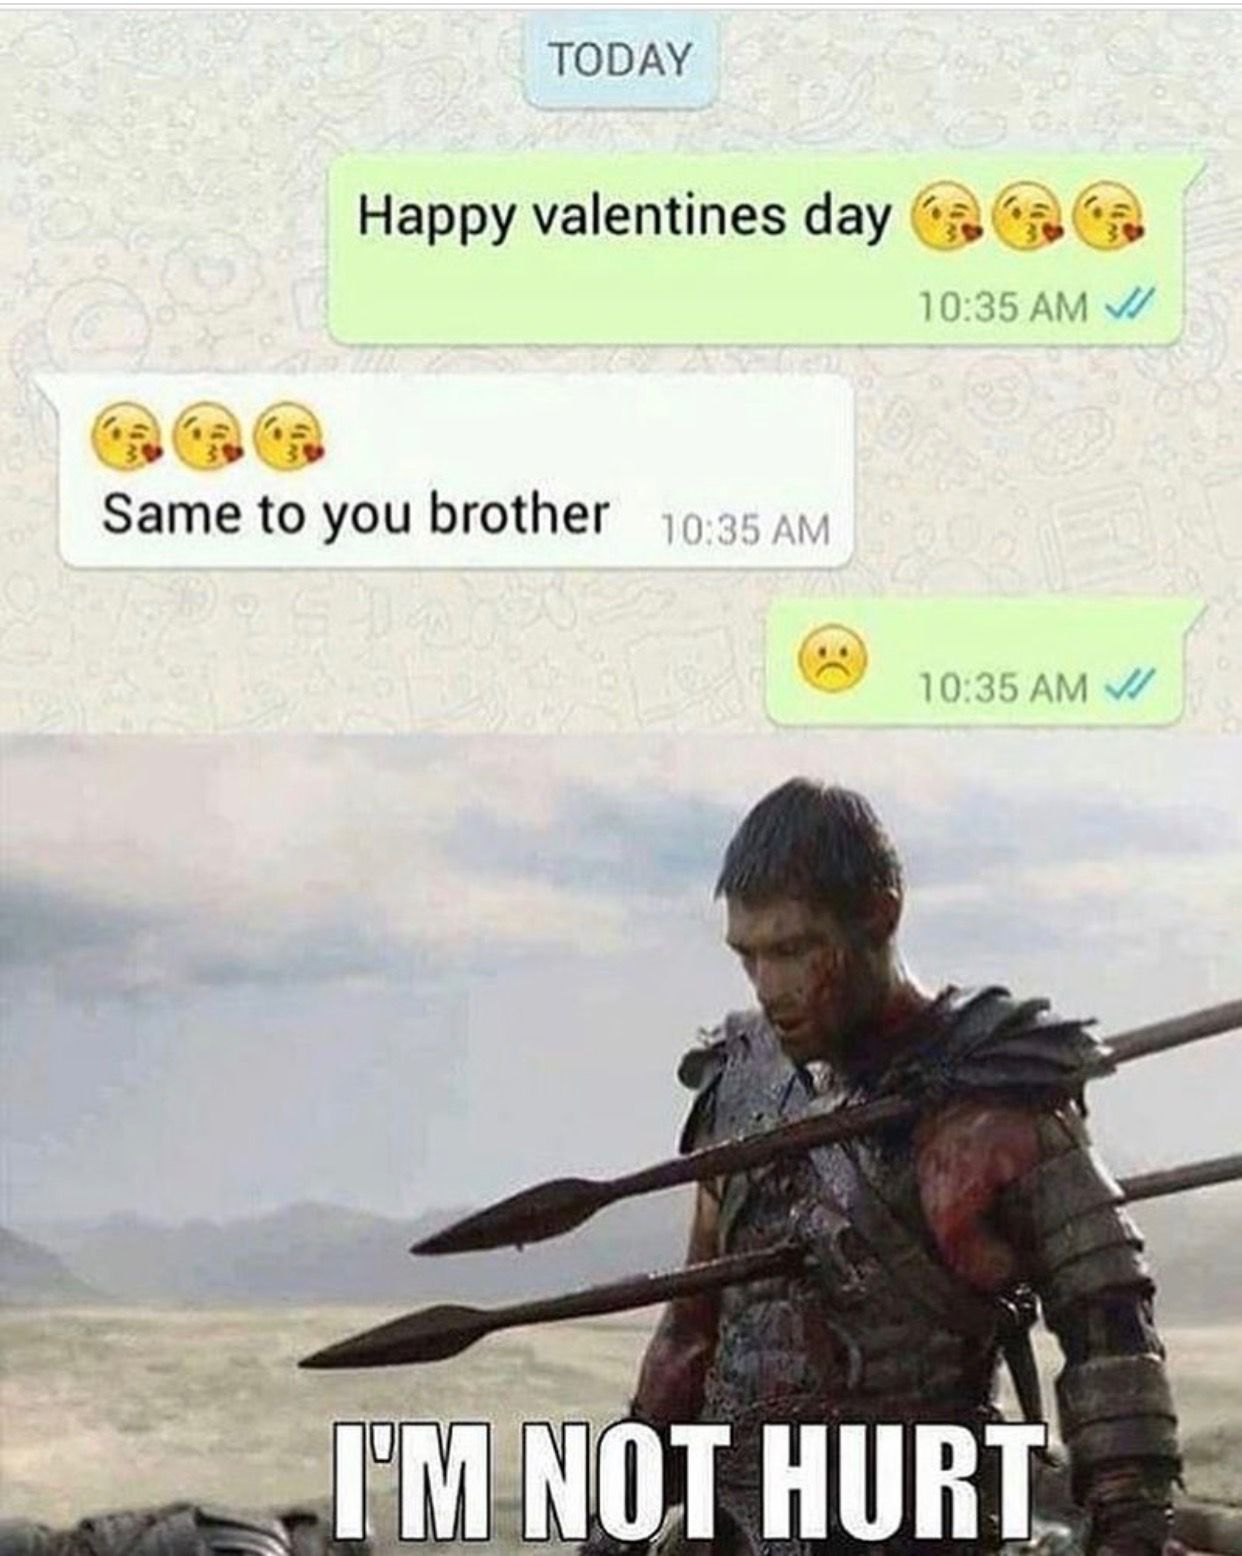 Pin By Laila Hussain On Desi Jokes Humor Valentines Day Funny Meme Funny Valentine Memes Valentines Quotes Funny